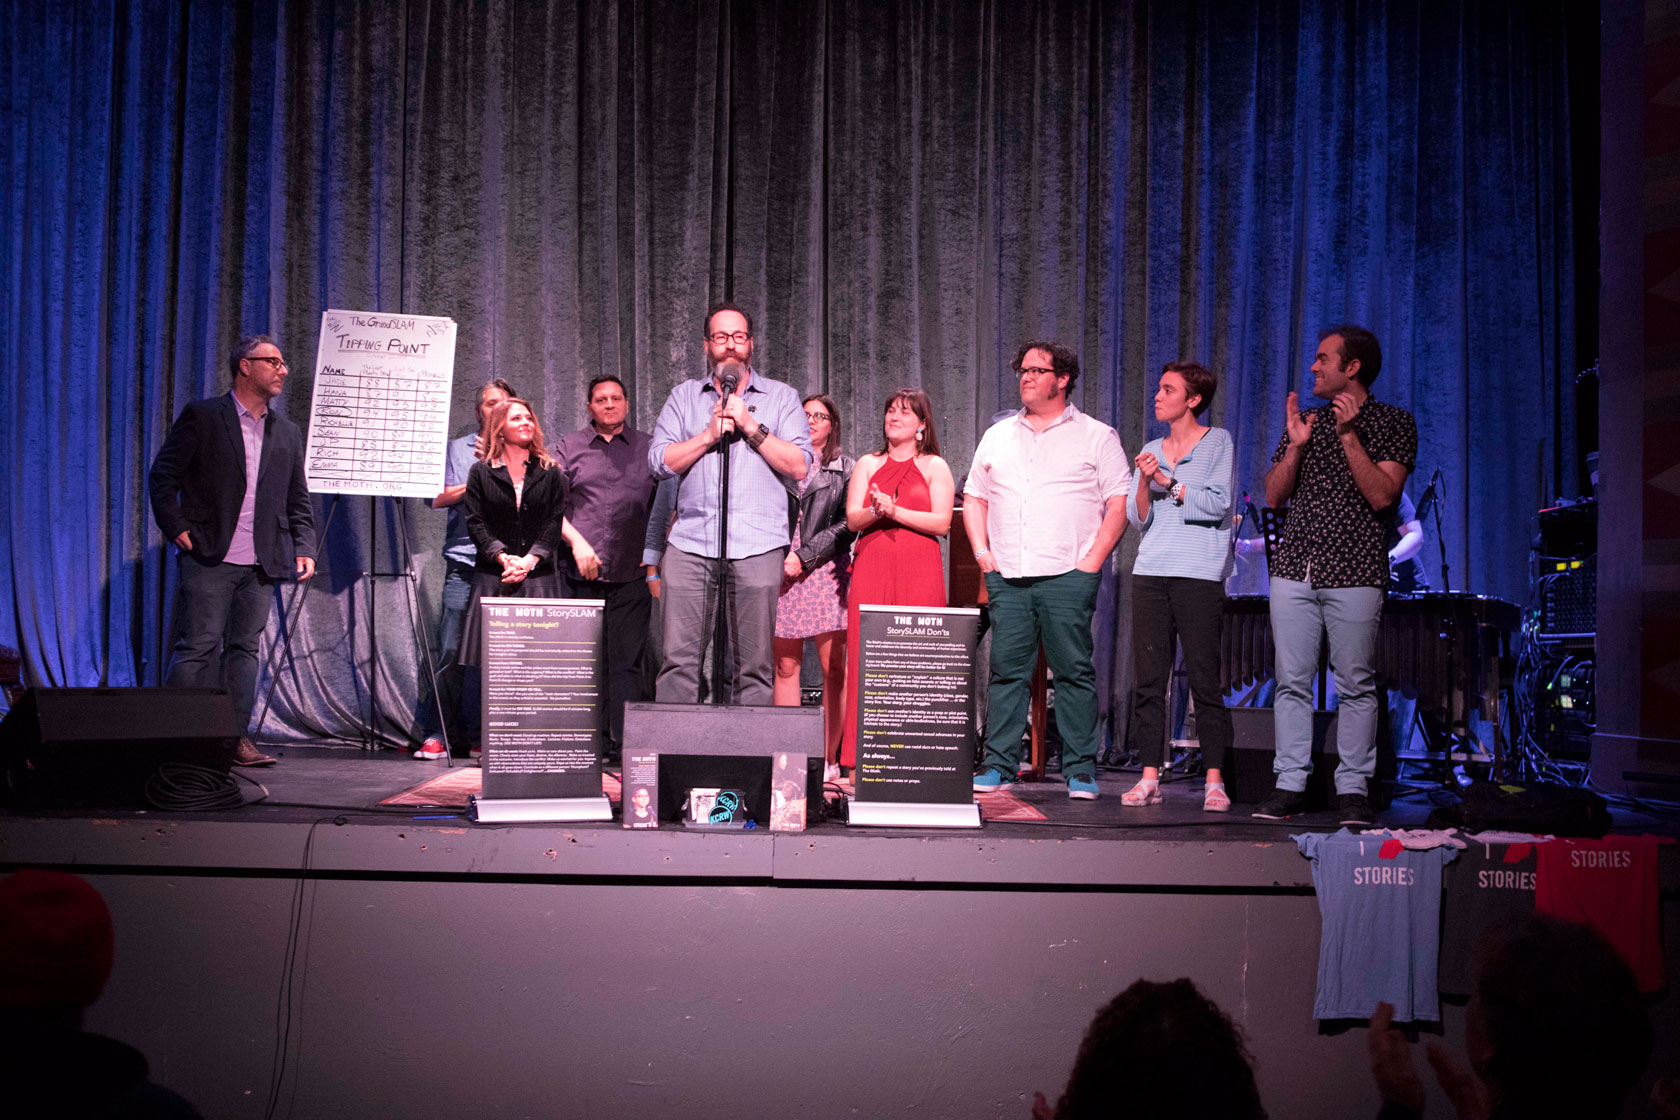 The evening's storytellers receive a warm round of applause at the conclusion of another Moth GrandSLAM in Los Angeles, October 22nd, 2018. (From left to right: Host Brian Finkelstein, storytellers Matthew Struski, Jade Driggers, Rich Tackenberg, StorySLAM producer Gary Buchler, Richelle Meiss, Hana Nobel, Ron Hart, Emma Horn & me.) Photo credit: Ricky Steel, courtesy of The Moth.